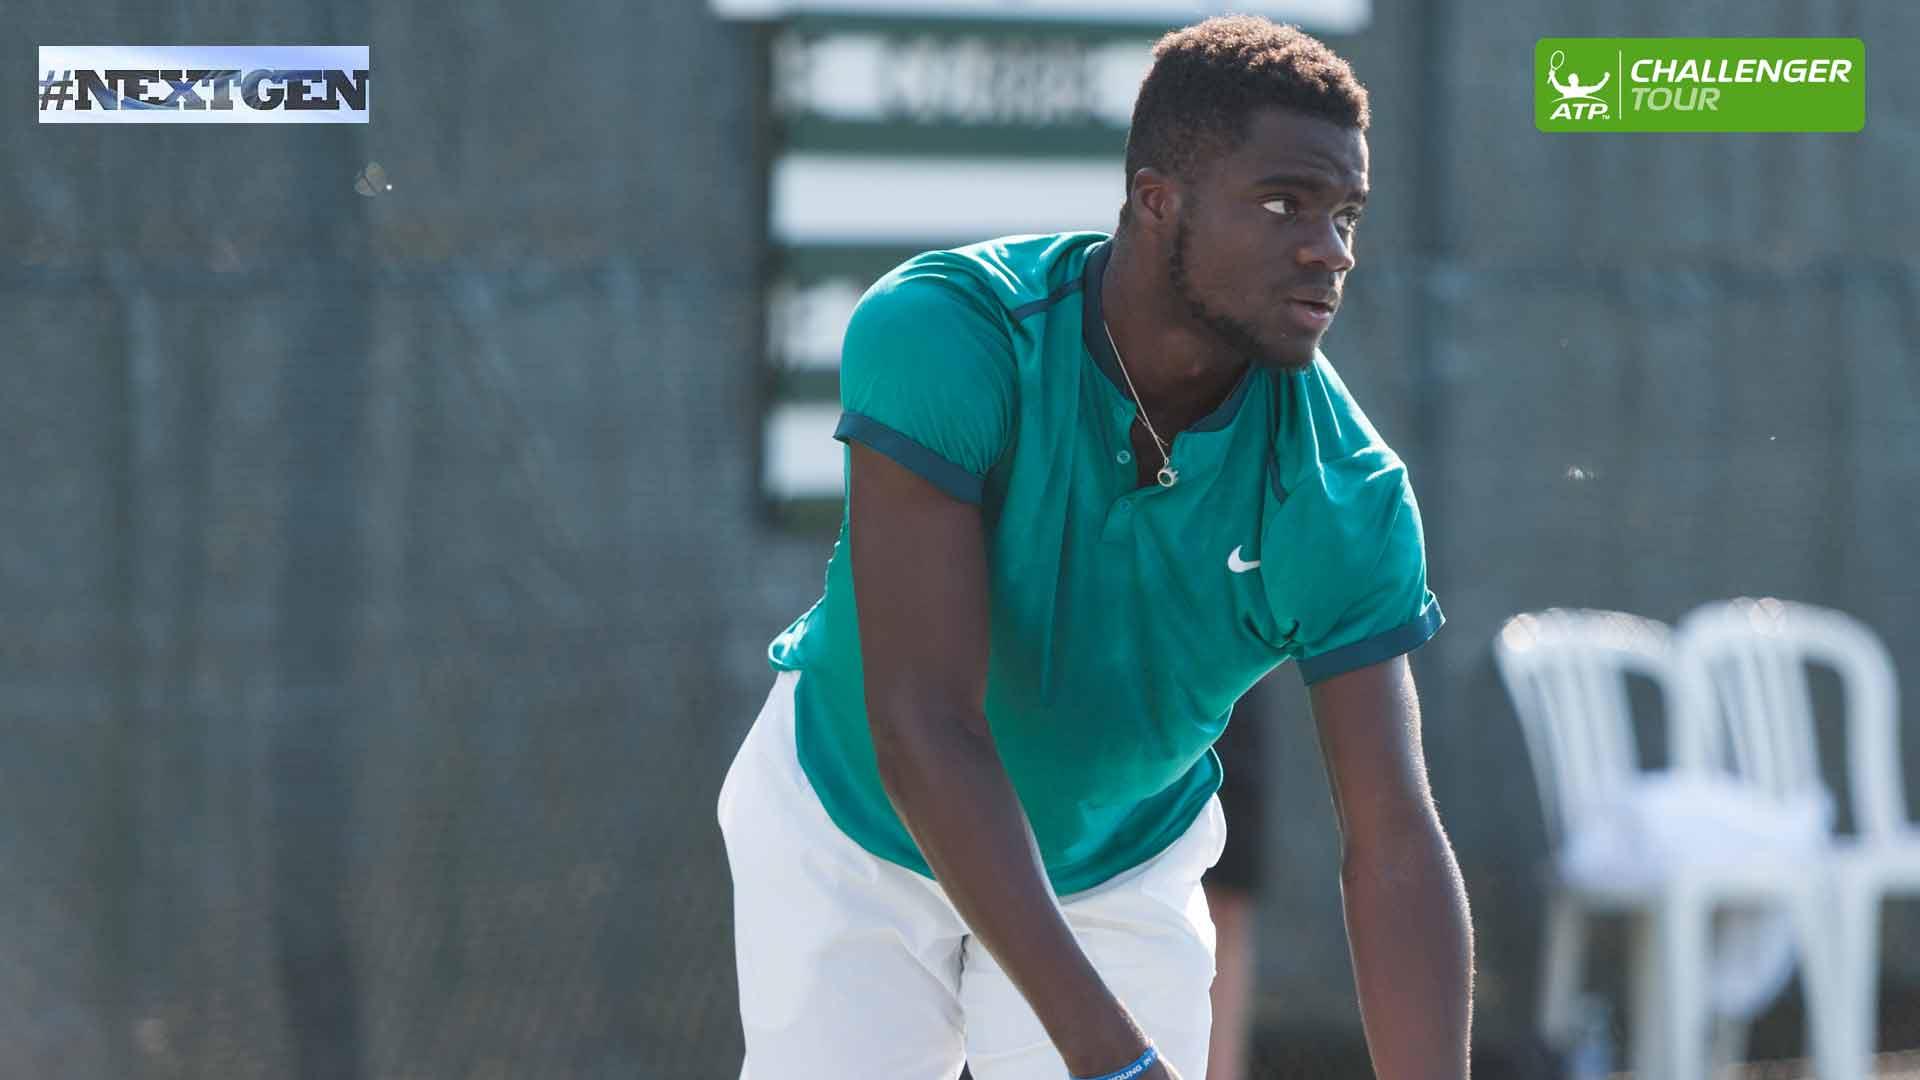 Frances Tiafoe is 11-3 this summer on the ATP Challenger Tour.